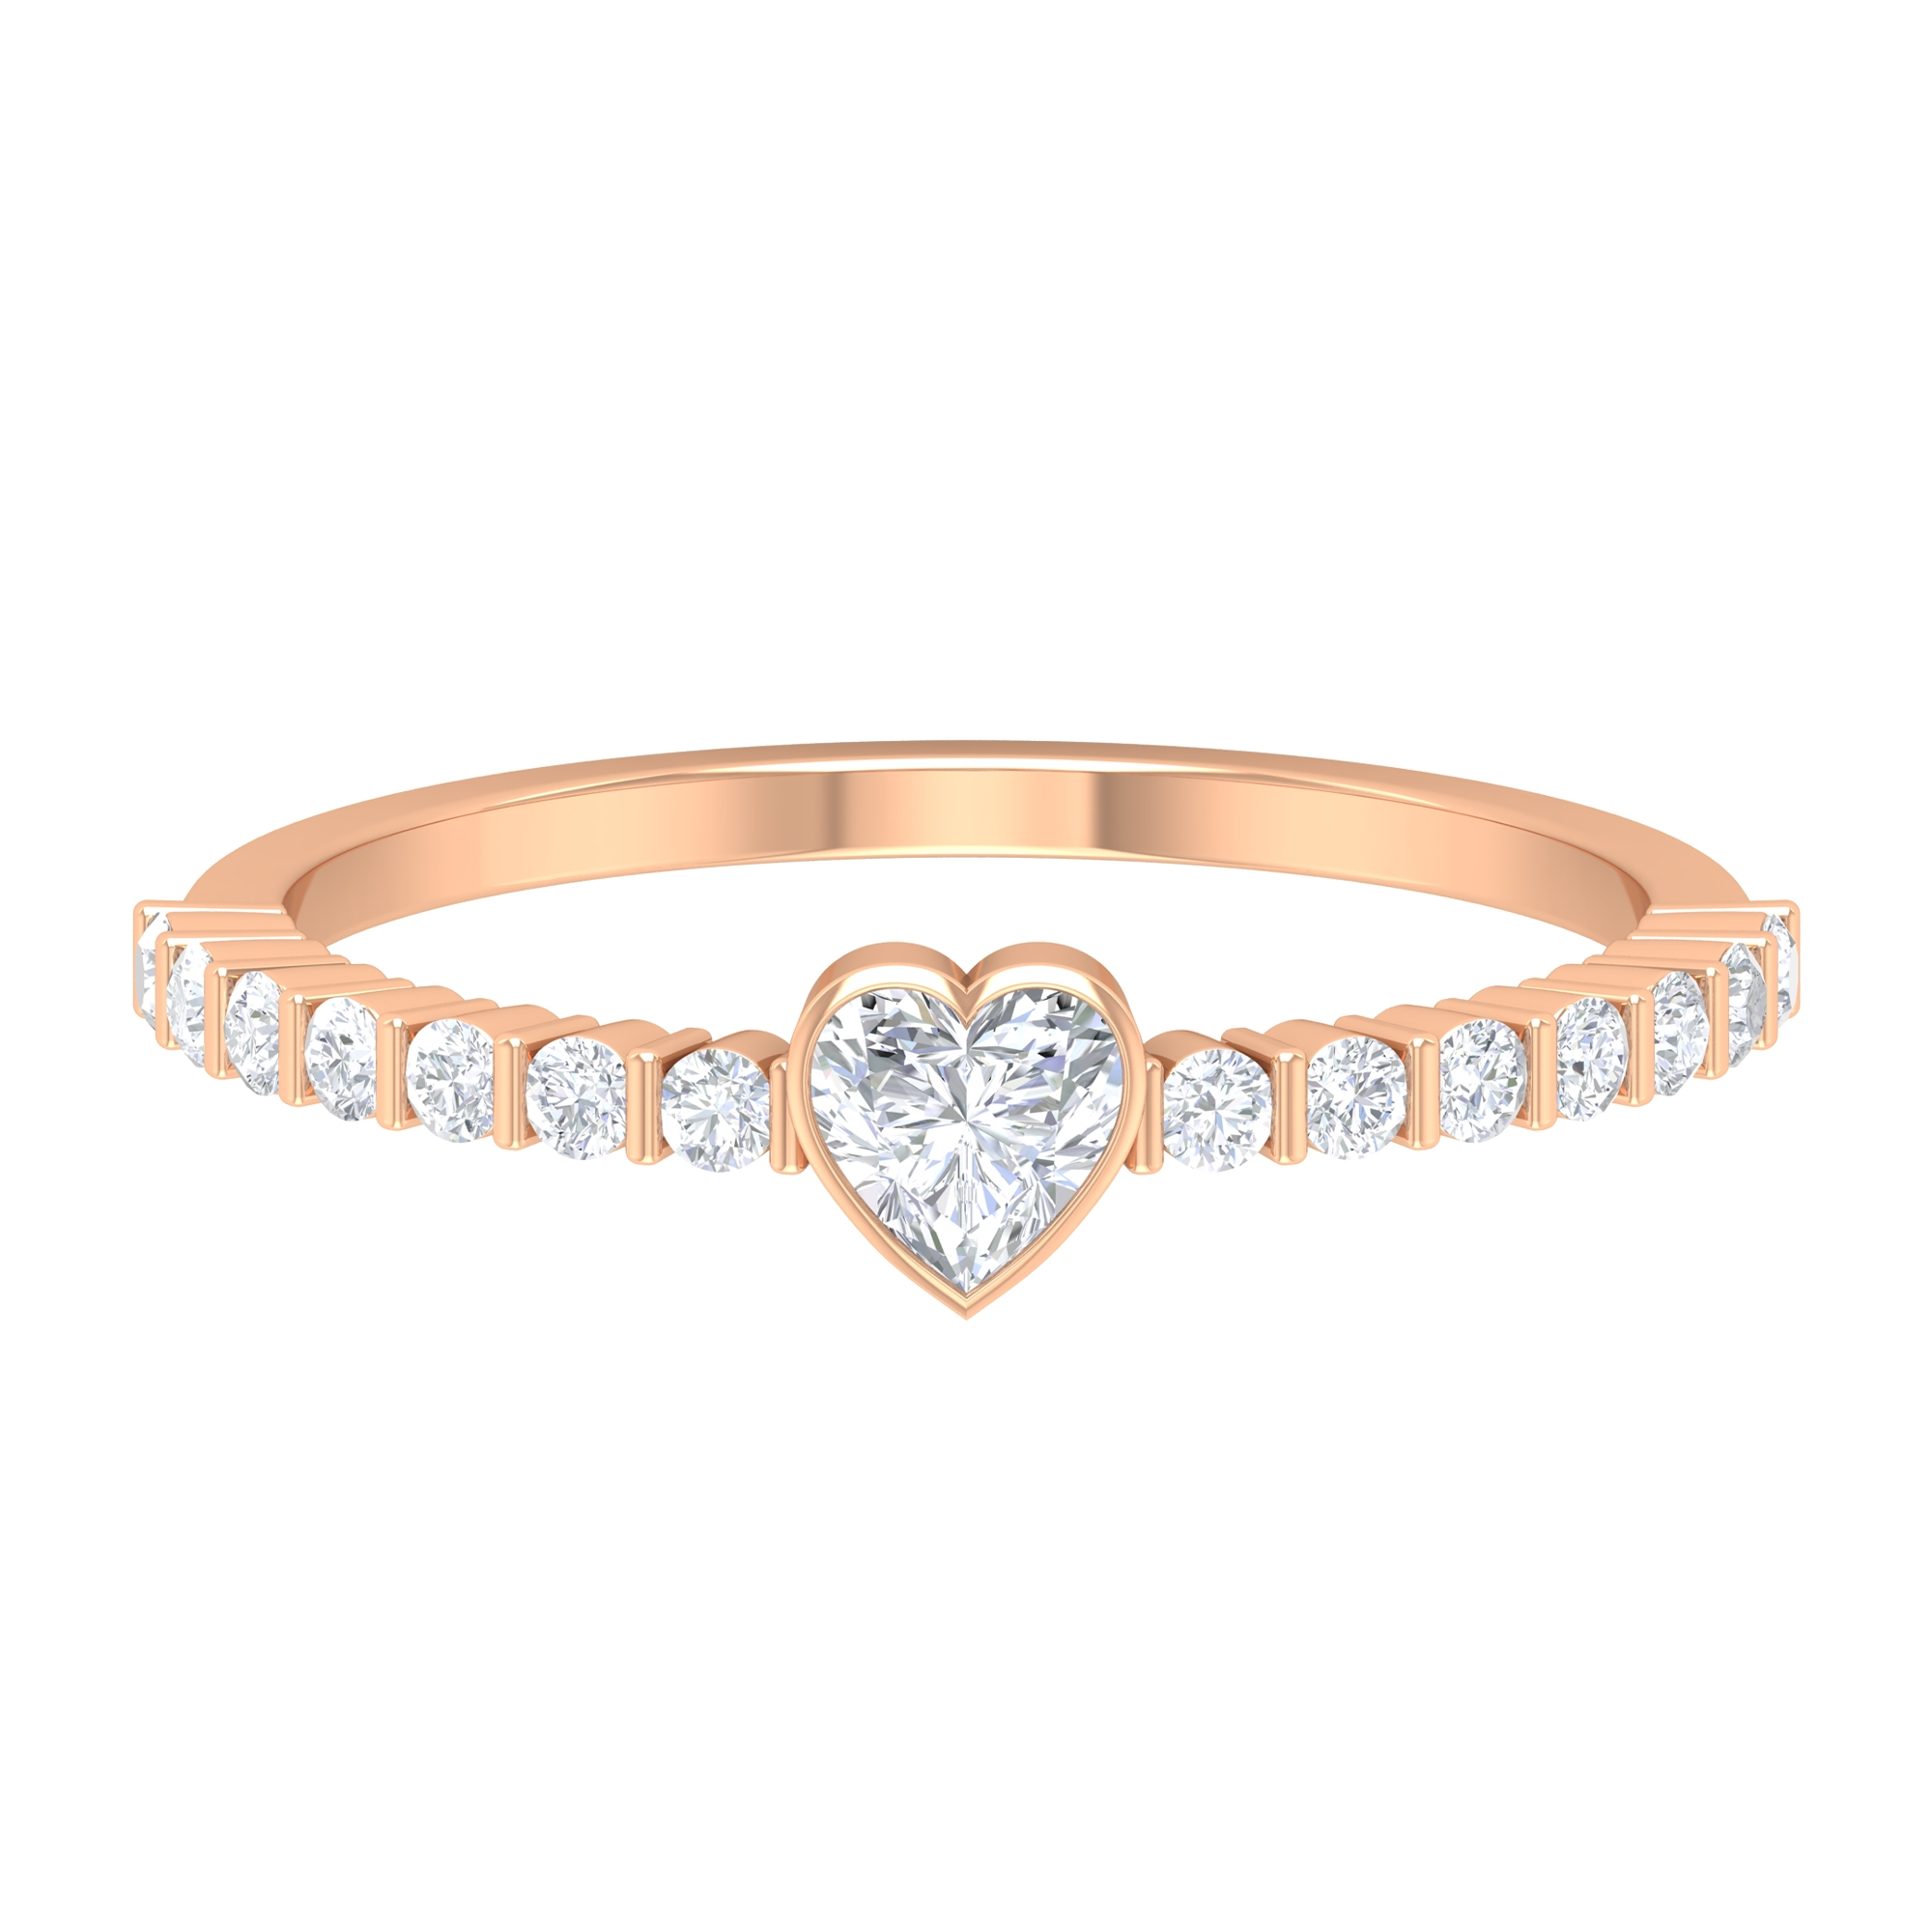 1/2 CT Heart Shape Diamond Solitaire Ring in Bezel Setting with Side Stones